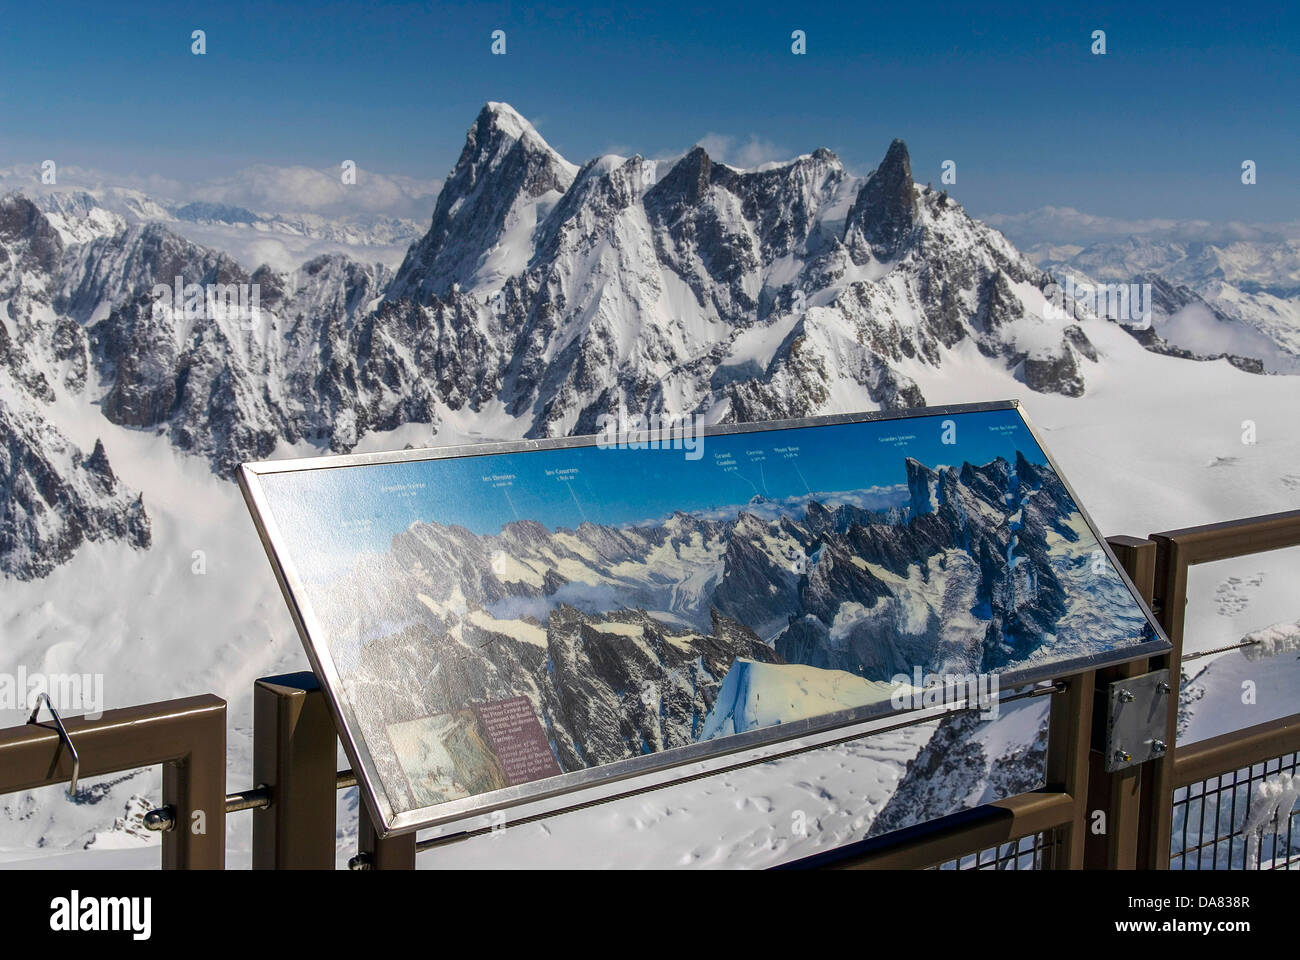 Viewpoint on the summit of the Aiguille du Midi, Chamonix Mont Blanc, France, cable-car - Stock Image